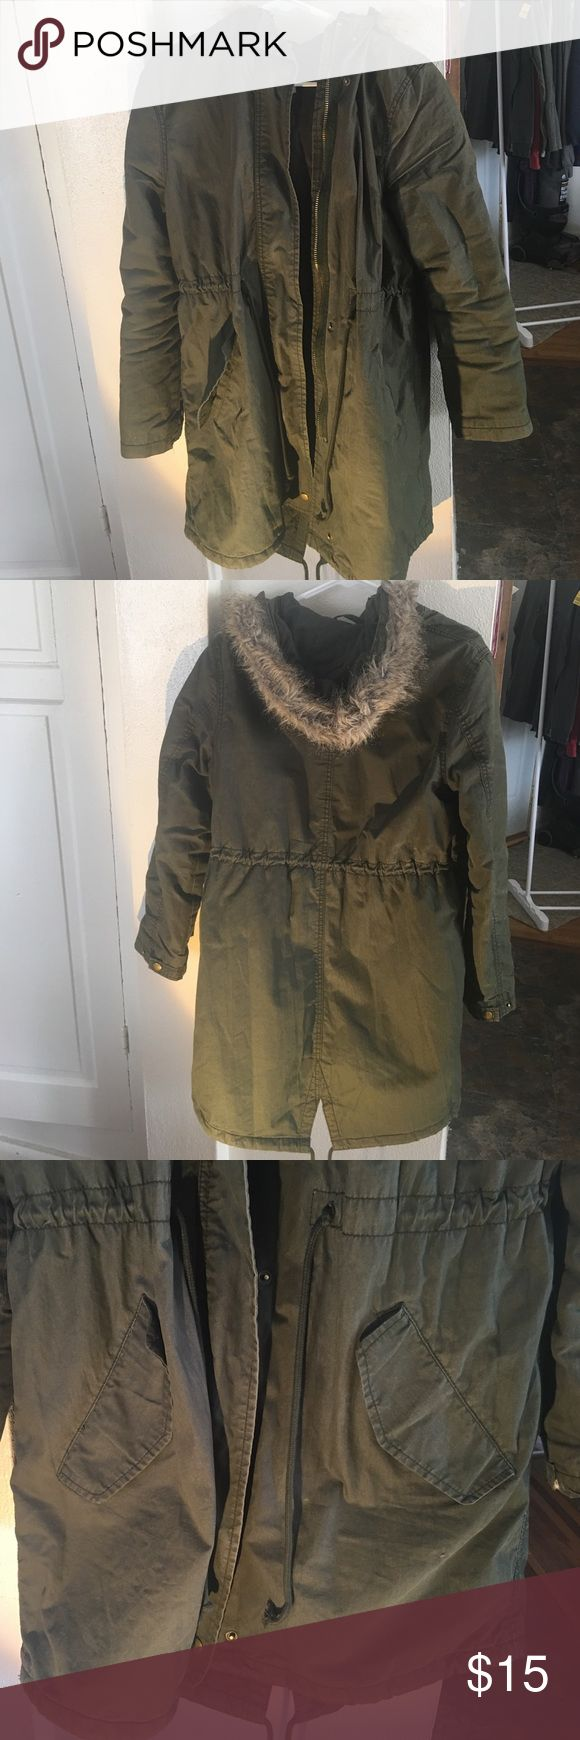 Army green light jacket with faux fur hood Army green lightweight jacket, has two external pockets, faux fur trim on hood, has both a zipper and buttons, and tie for the waist. Very flattering, comfortable, and stylish. Old Navy Jackets & Coats Utility Jackets